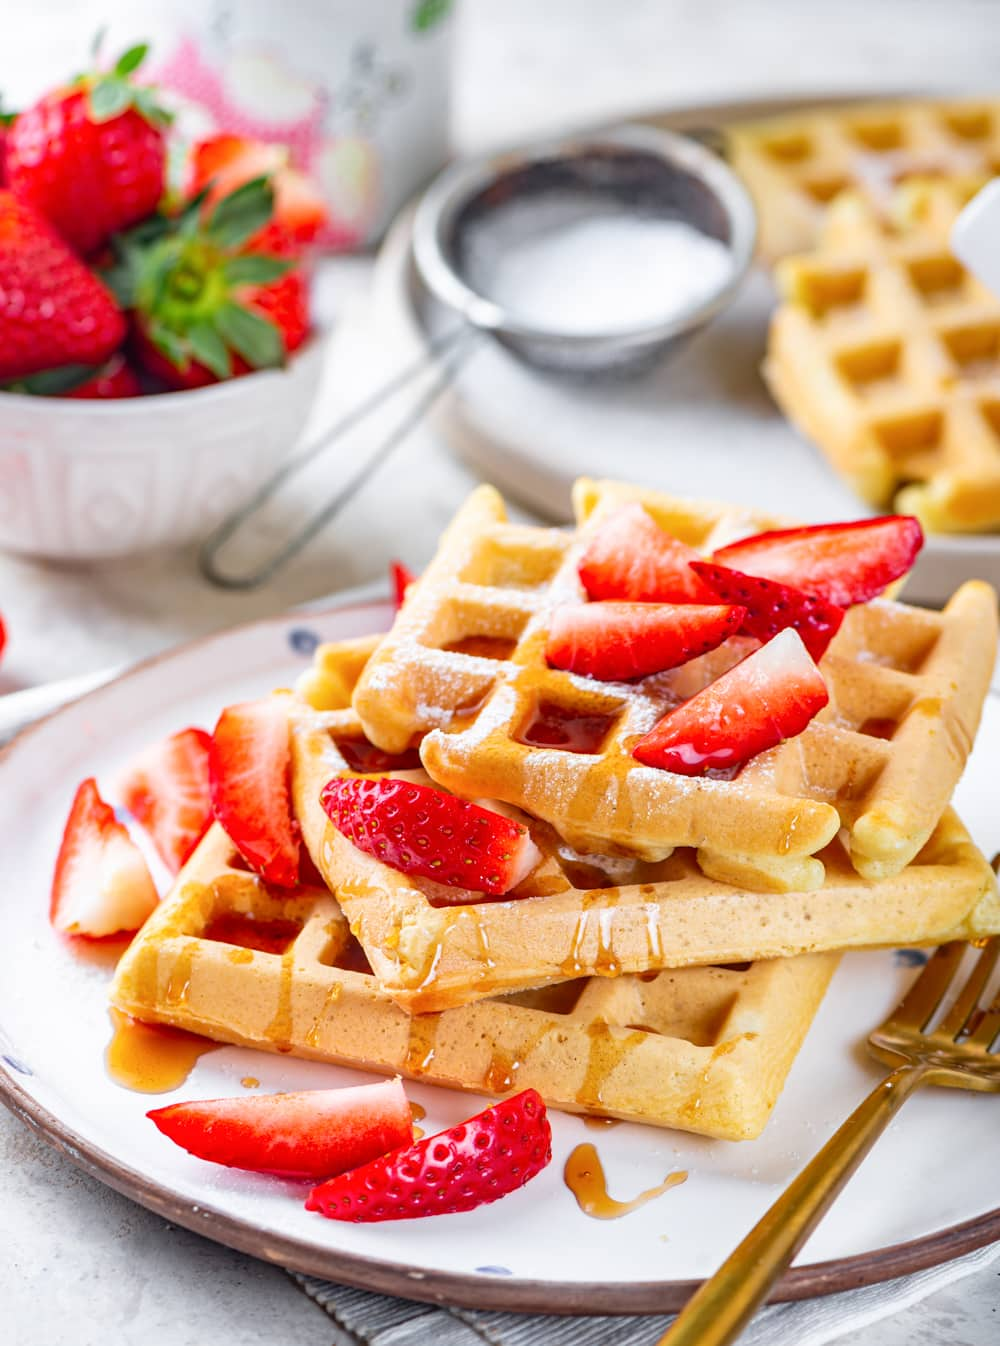 A white plate with three square vegan waffles unevenly stacked on top of each other. Maple syrup is drizzled on top and there are cut up strawberries on the waffles with a gold fork to the right of the waffles. A white plate with two plain vegan waffles are behind the plate and there is a bowl of strawberries to the left of it.